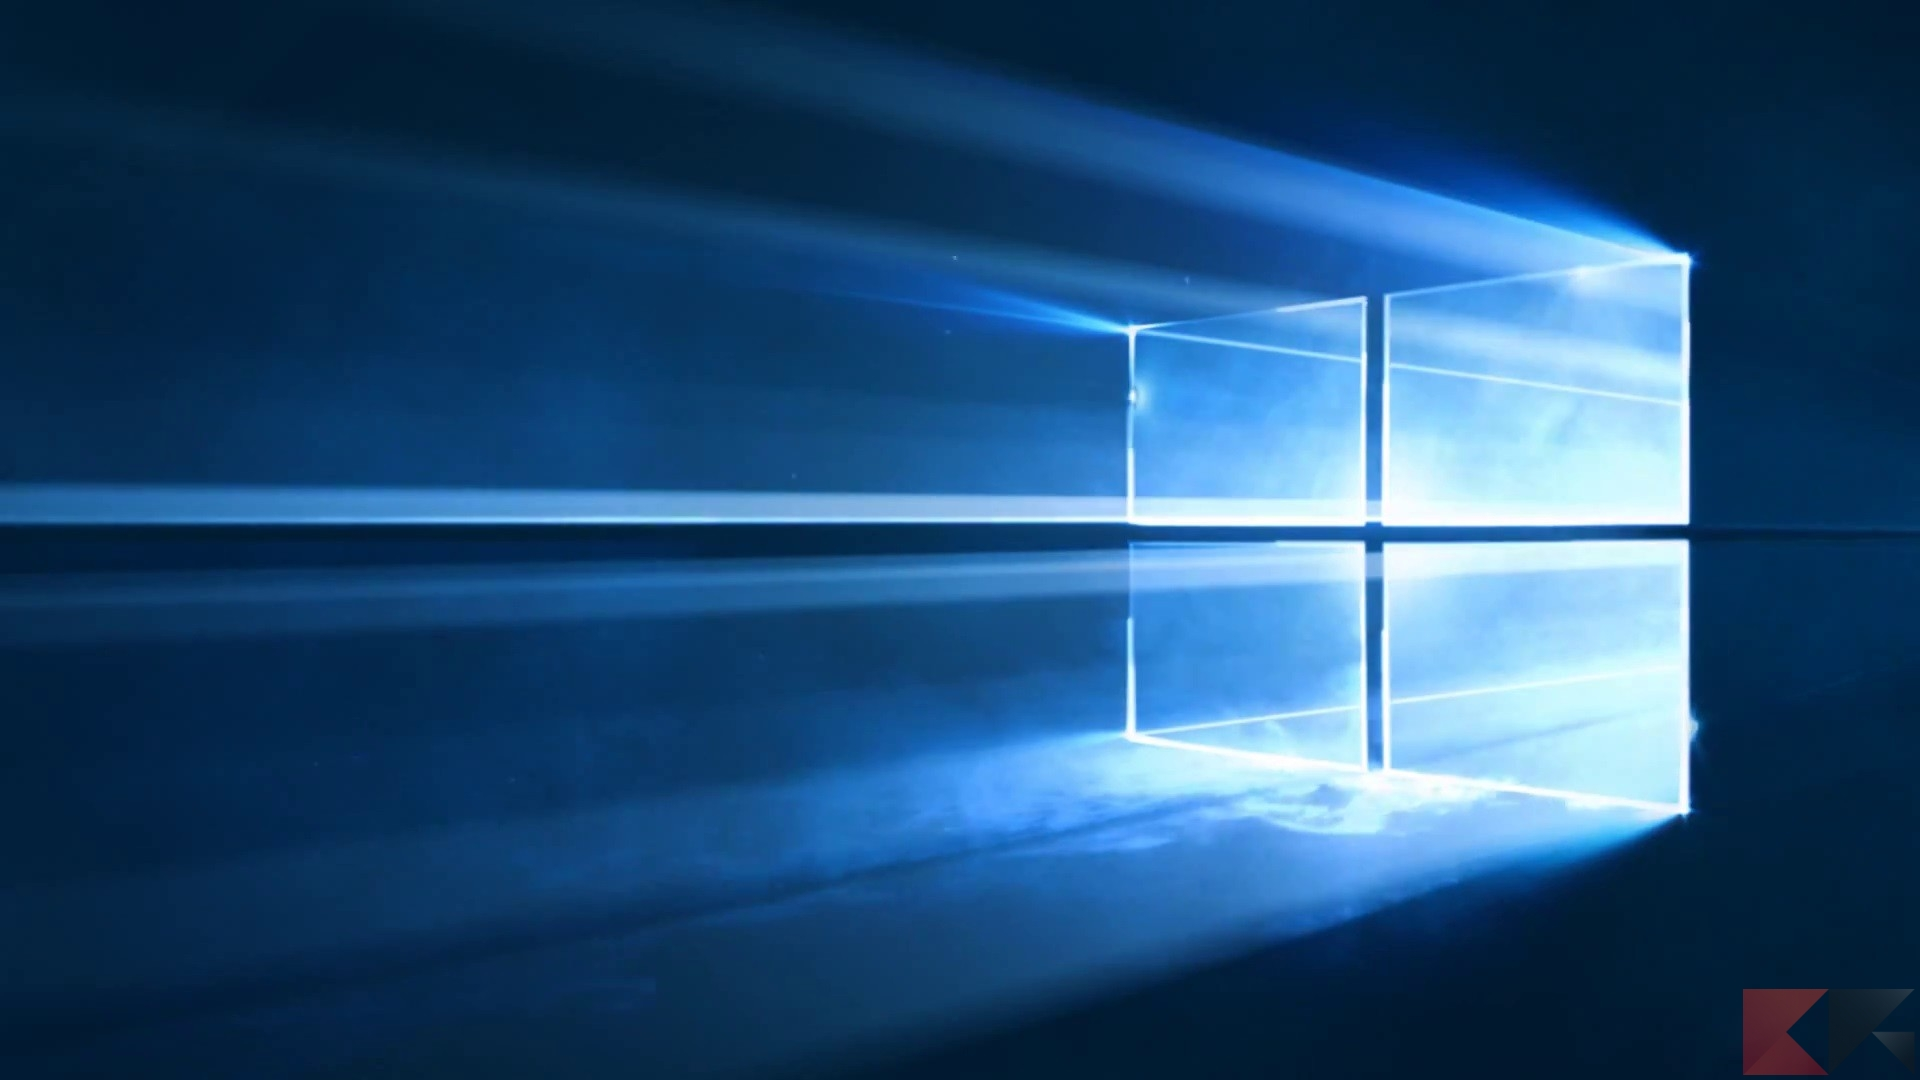 Acquistare licenze windows legali